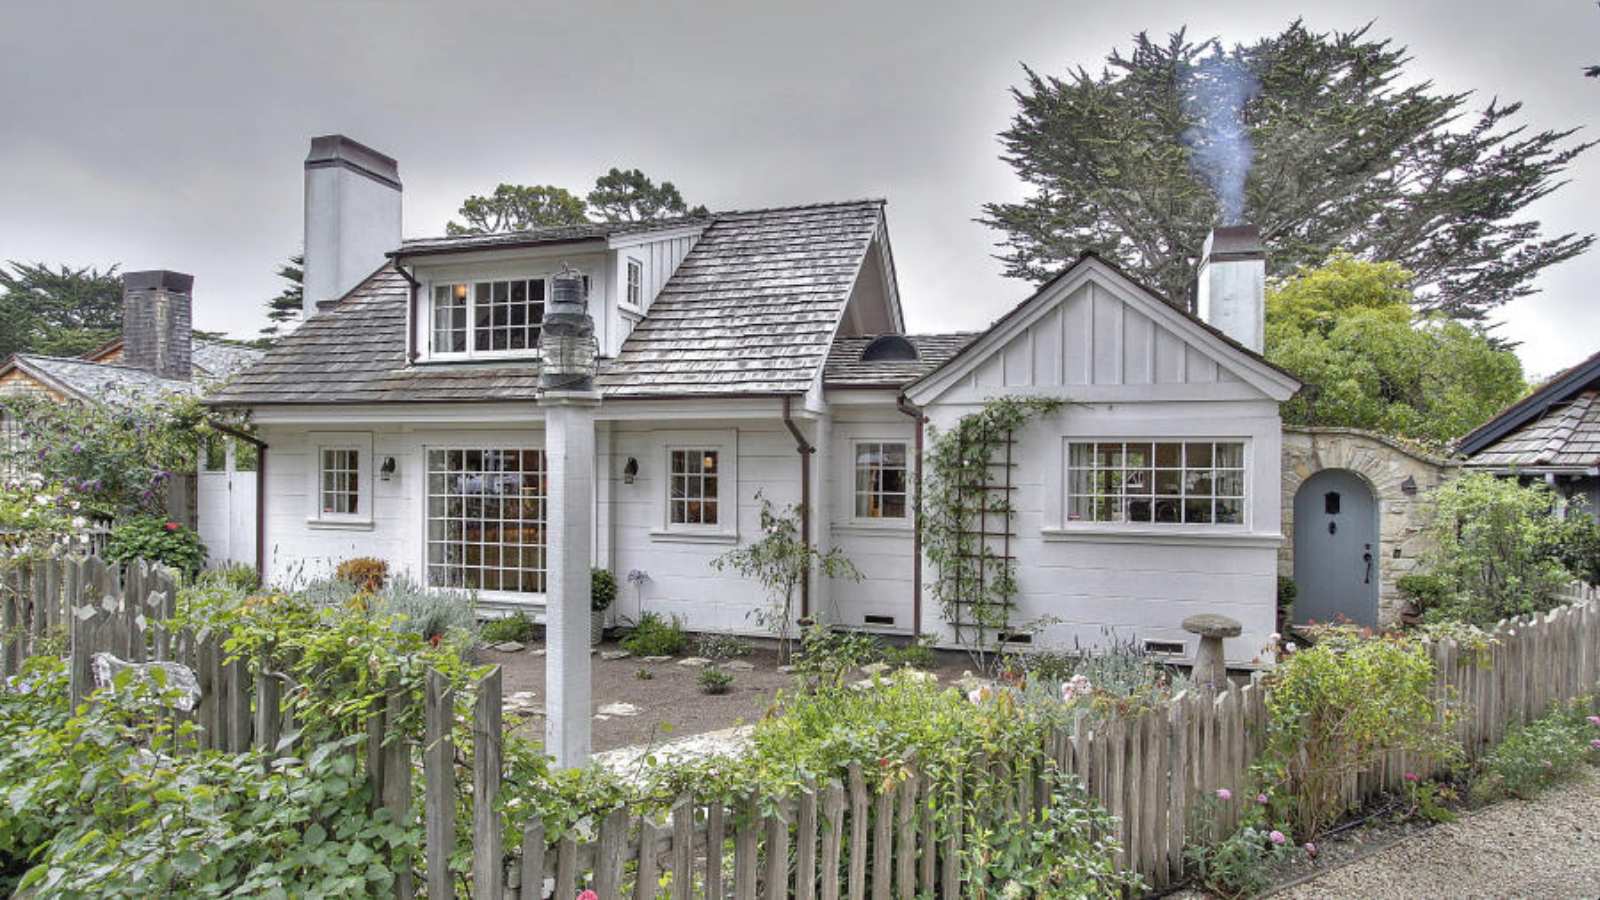 1920 Cottage Style | CLASSIC MURPHY 1920's COUNTRY ENGLISH STYLE COTTAGE | Once upon a ...